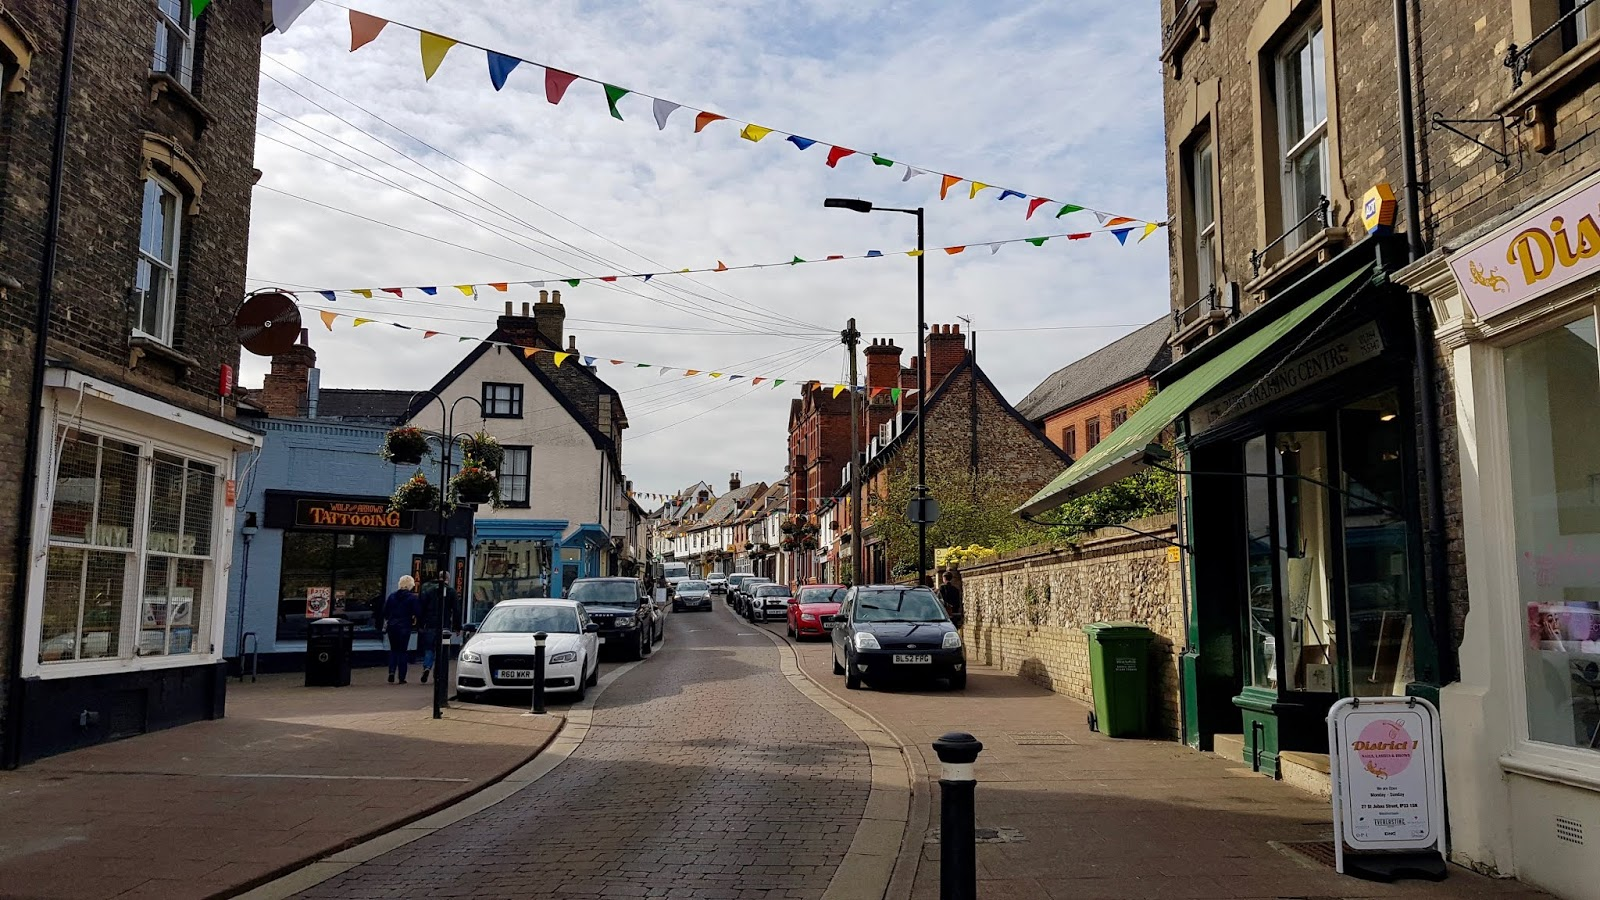 St John's Street, Bury St Edmunds, with colourful independent shops and bunting strung between the houses